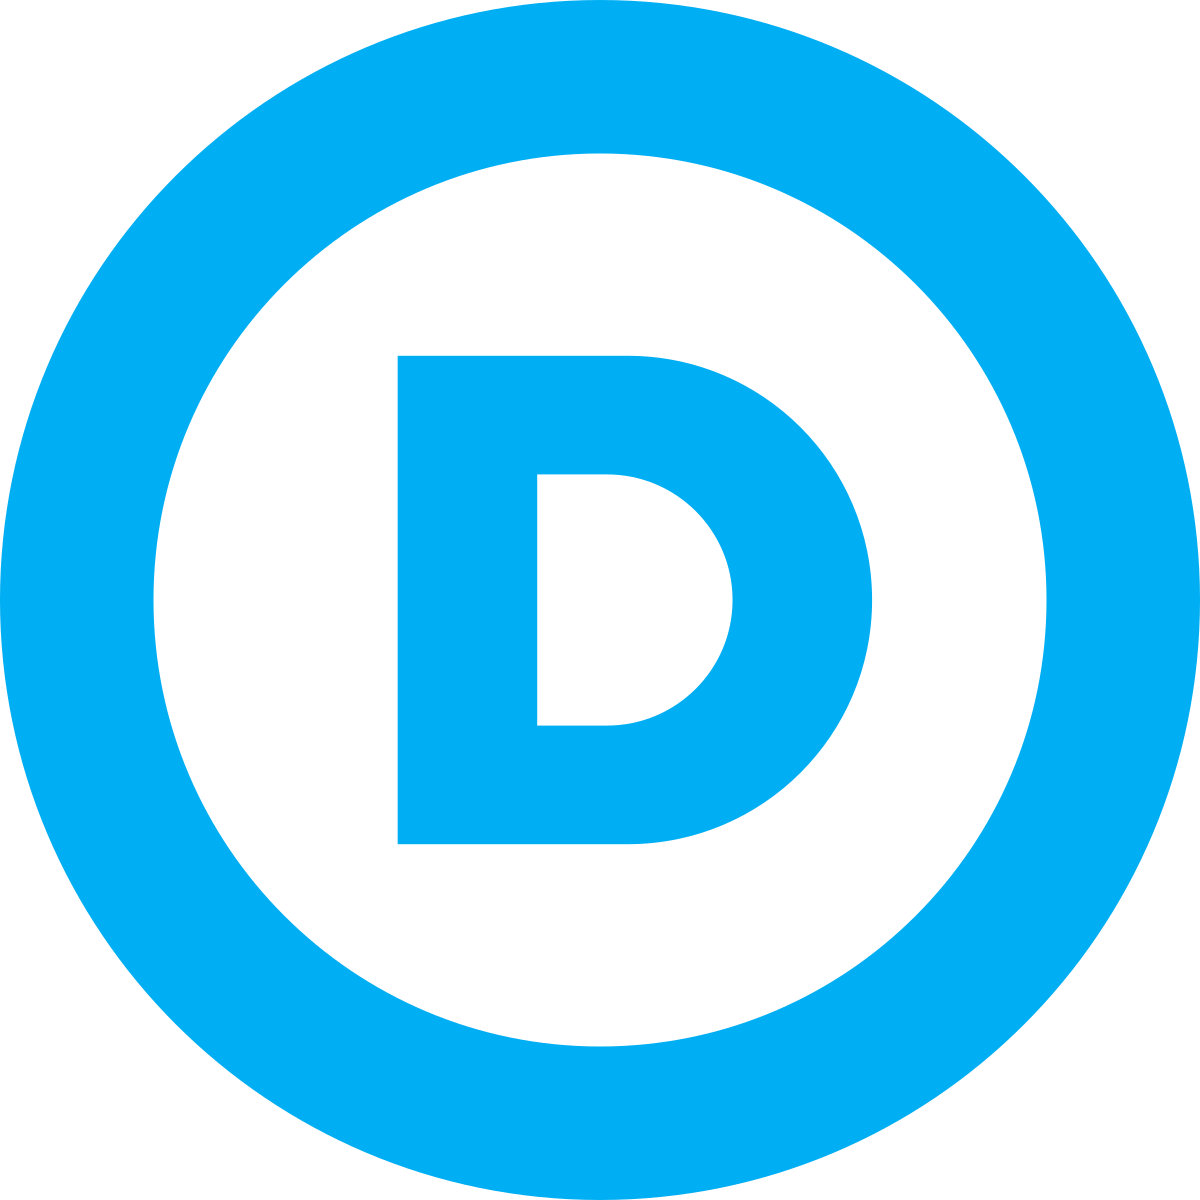 Website clipart non living. Democratic party united states